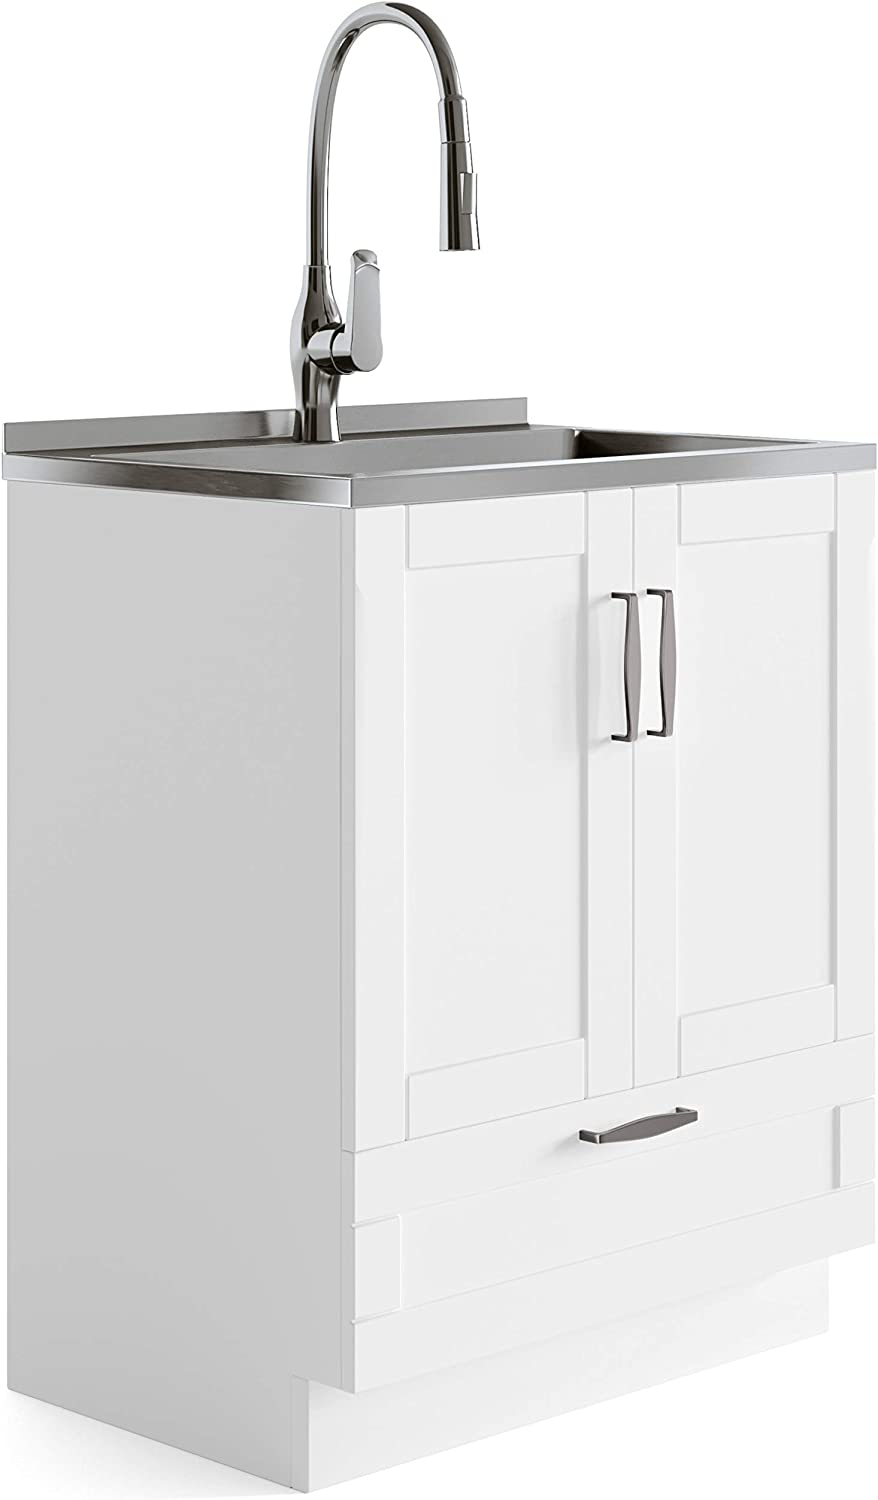 SIMPLIHOME Reed Transitional 28 inch Deluxe Laundry Cabinet with Pull-out Faucet and Stainless Steel Sink